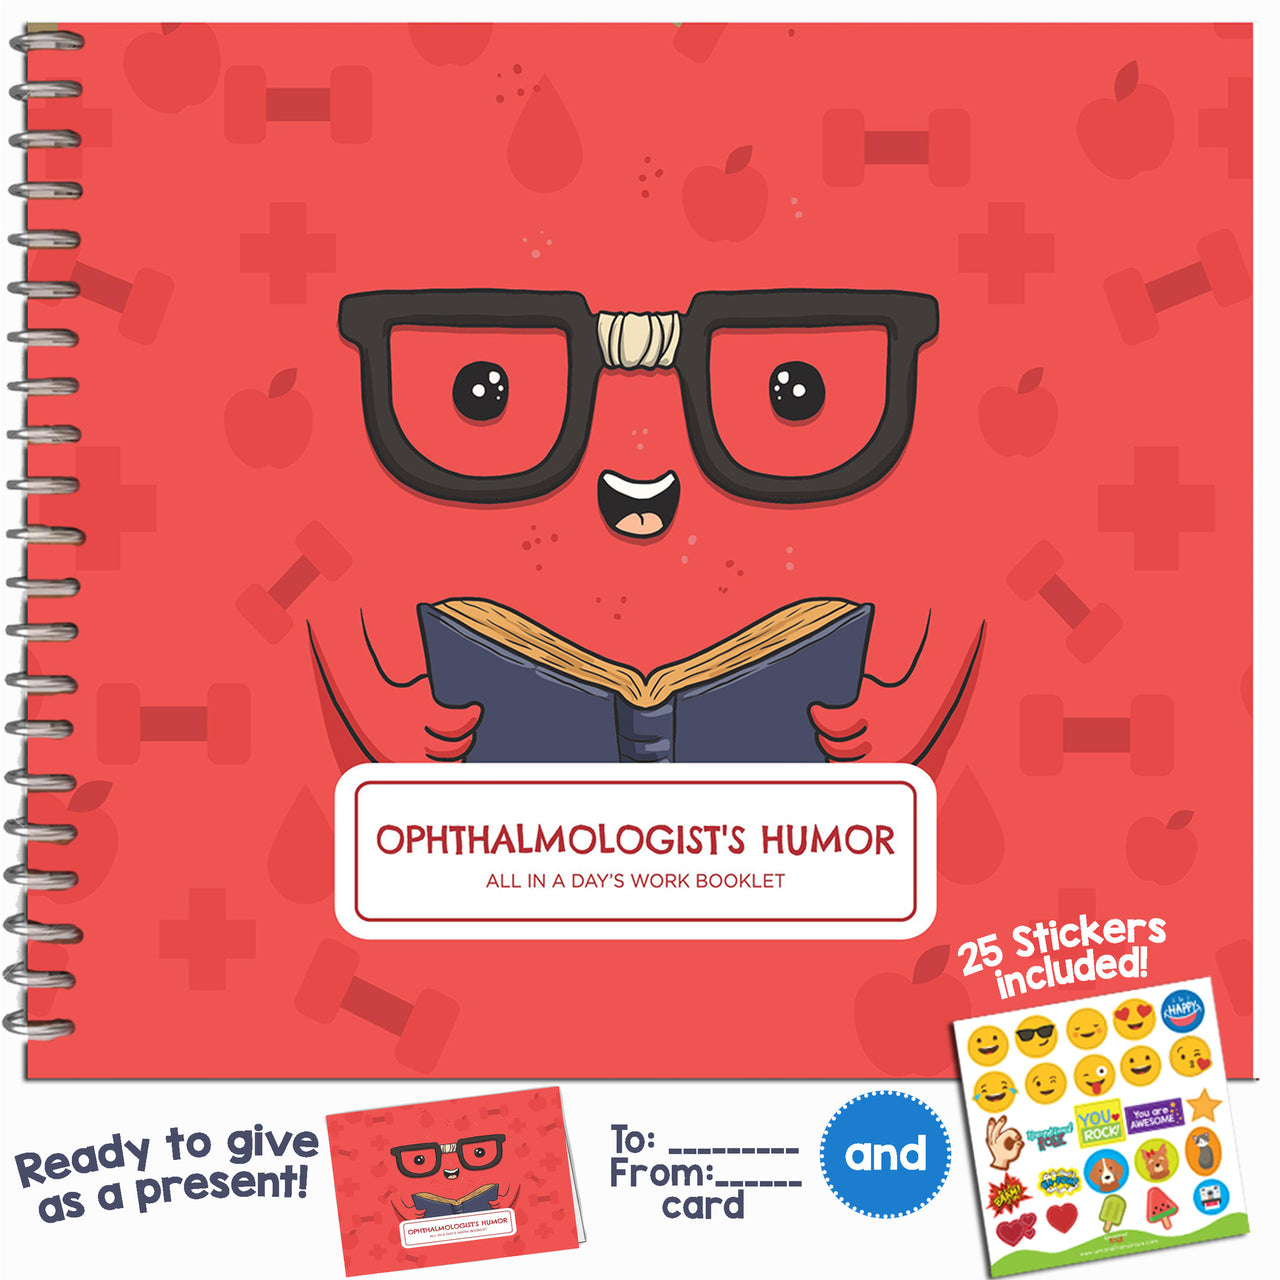 OPHTHALMOLOGIST GIFTS - Personalizable Humor Booklet With Matching Card